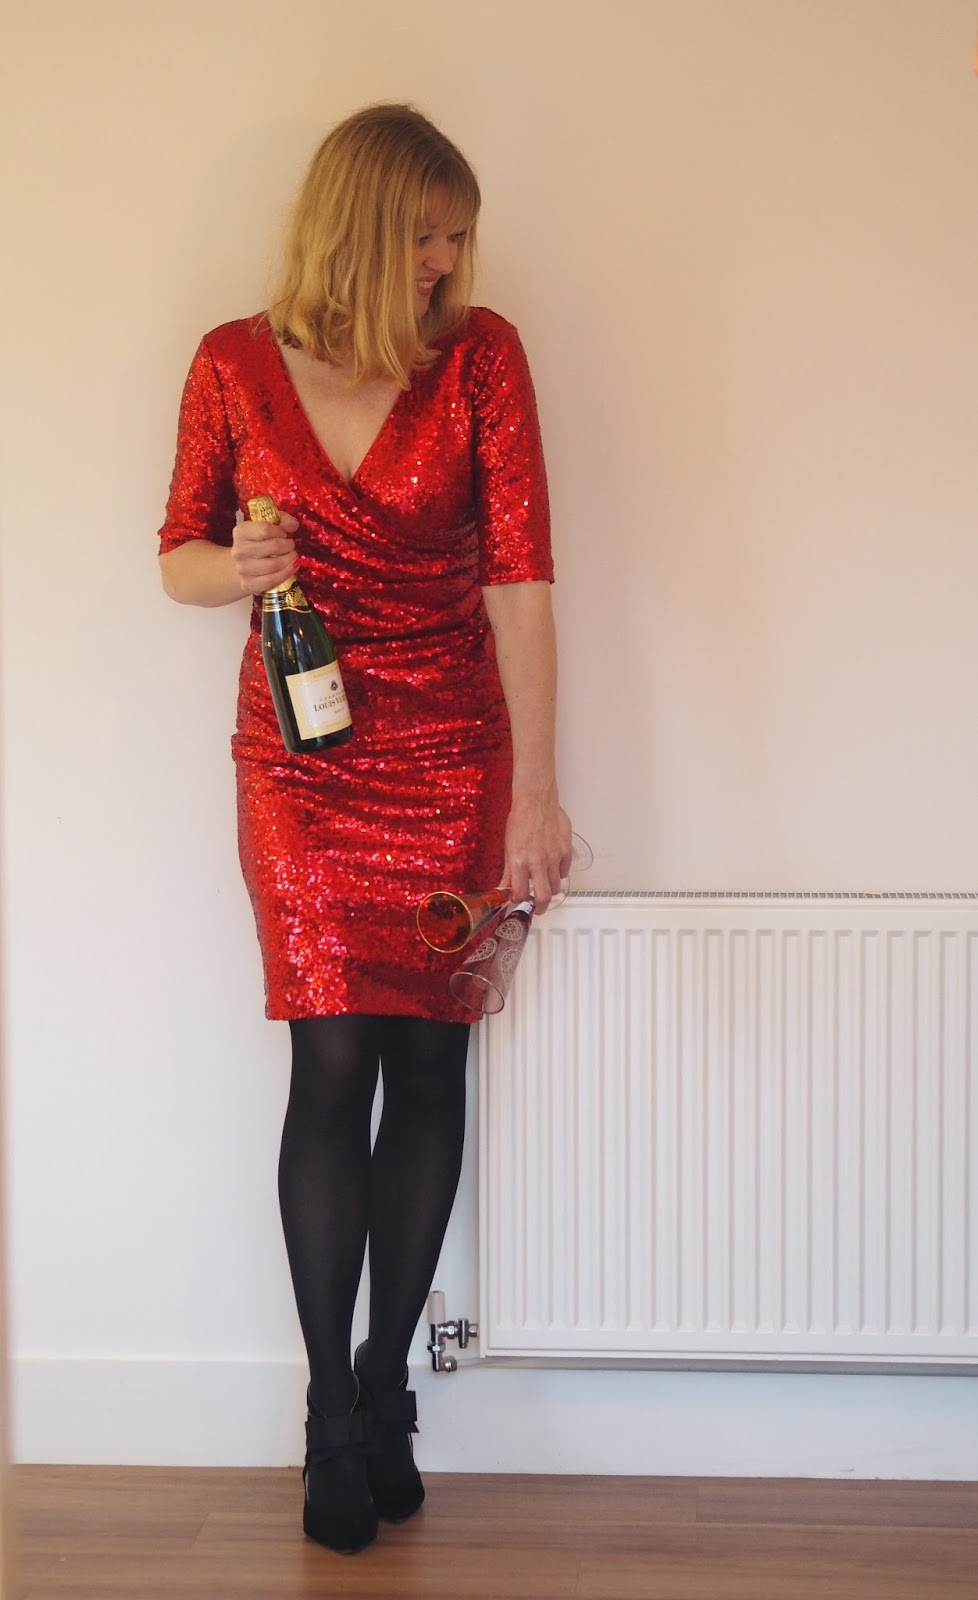 Red sequin dress for Christmas pasrty outfit